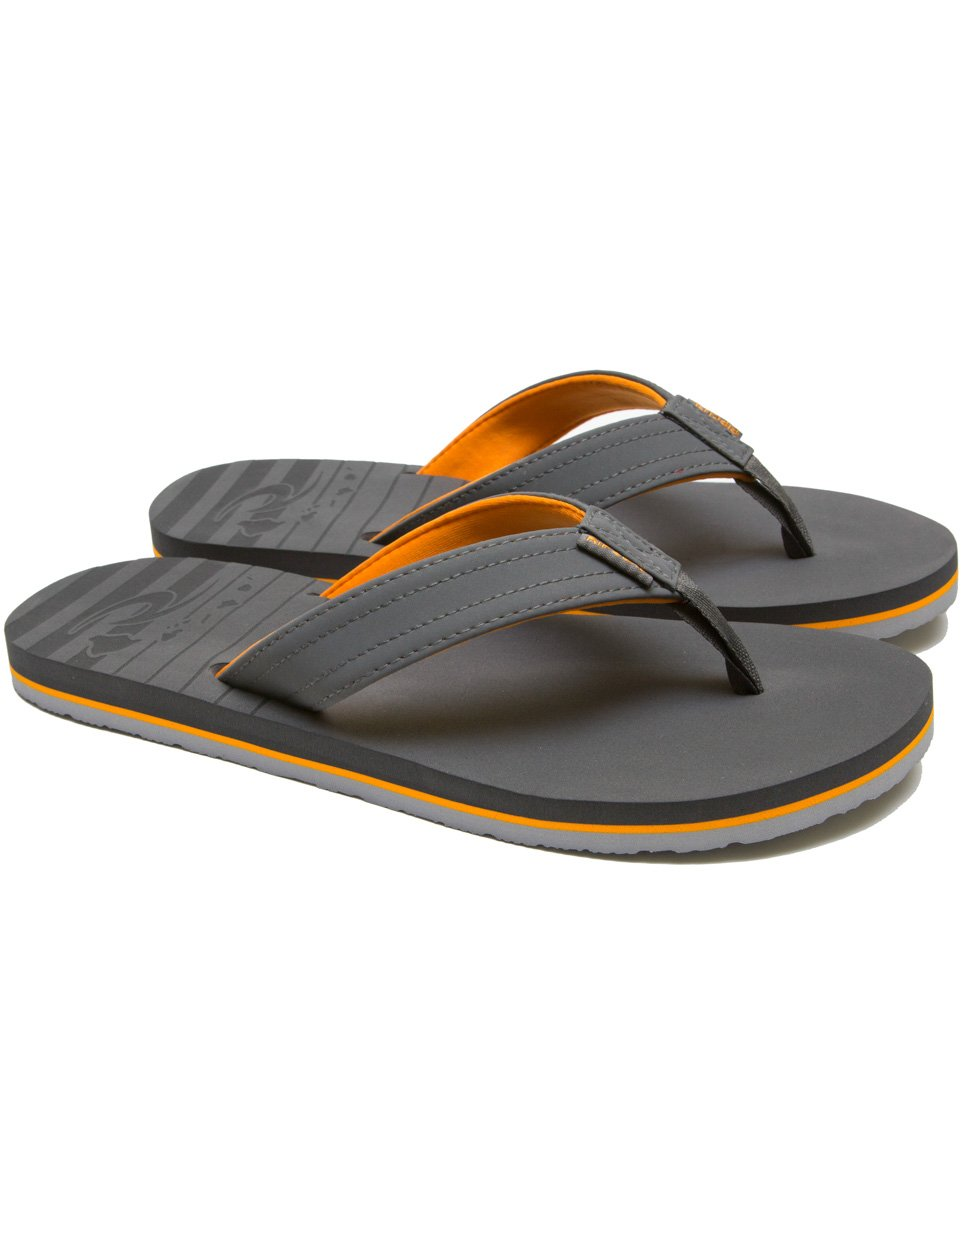 Rip Curl The Groove Sandal Charcoal